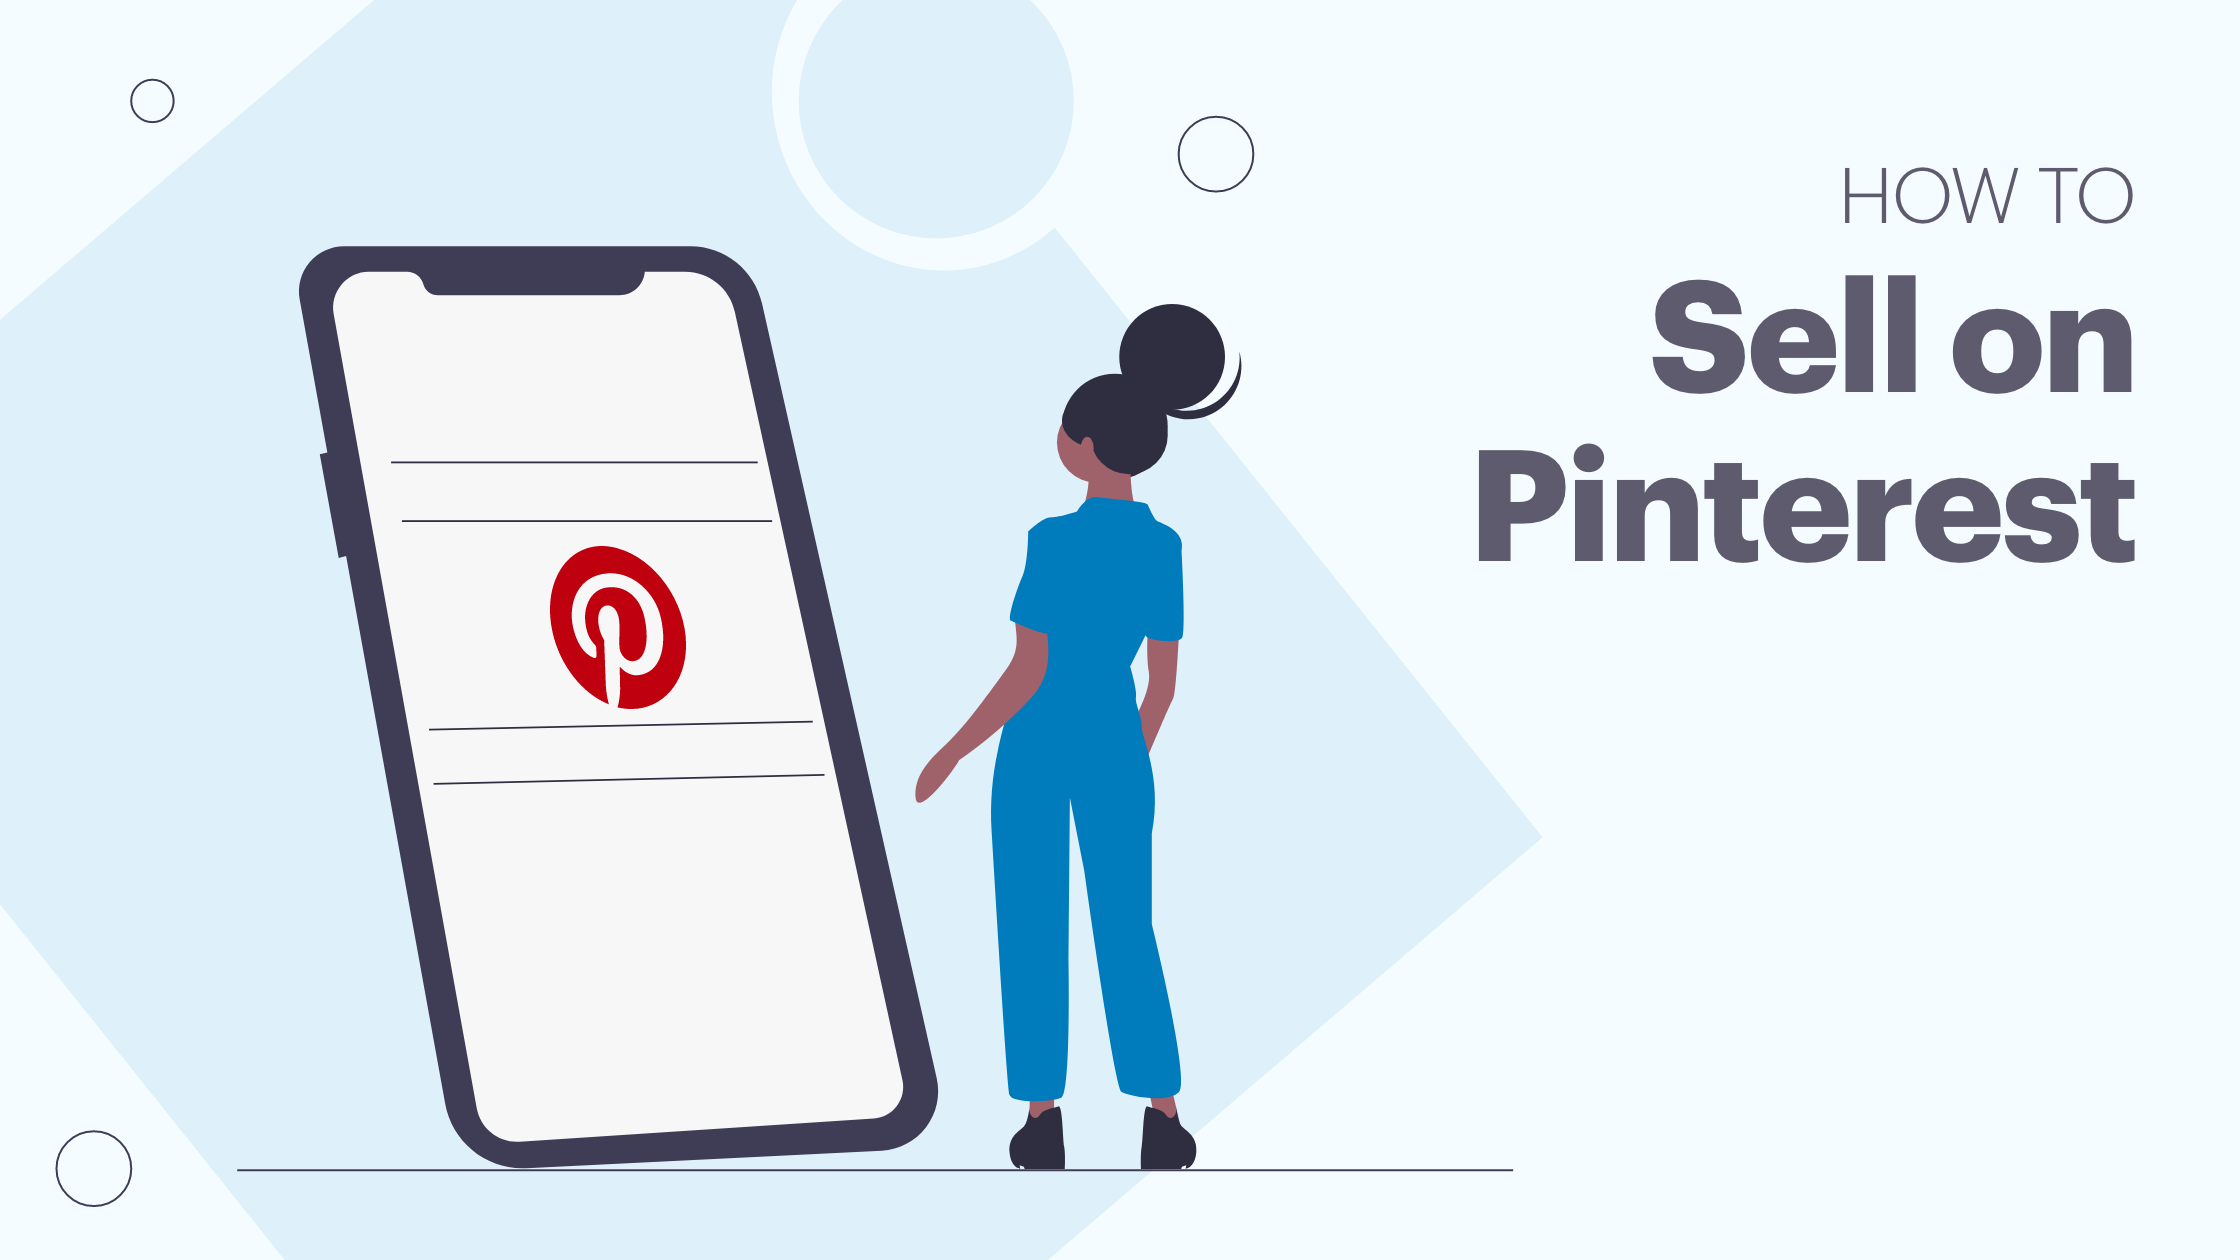 Sell on Pinterest